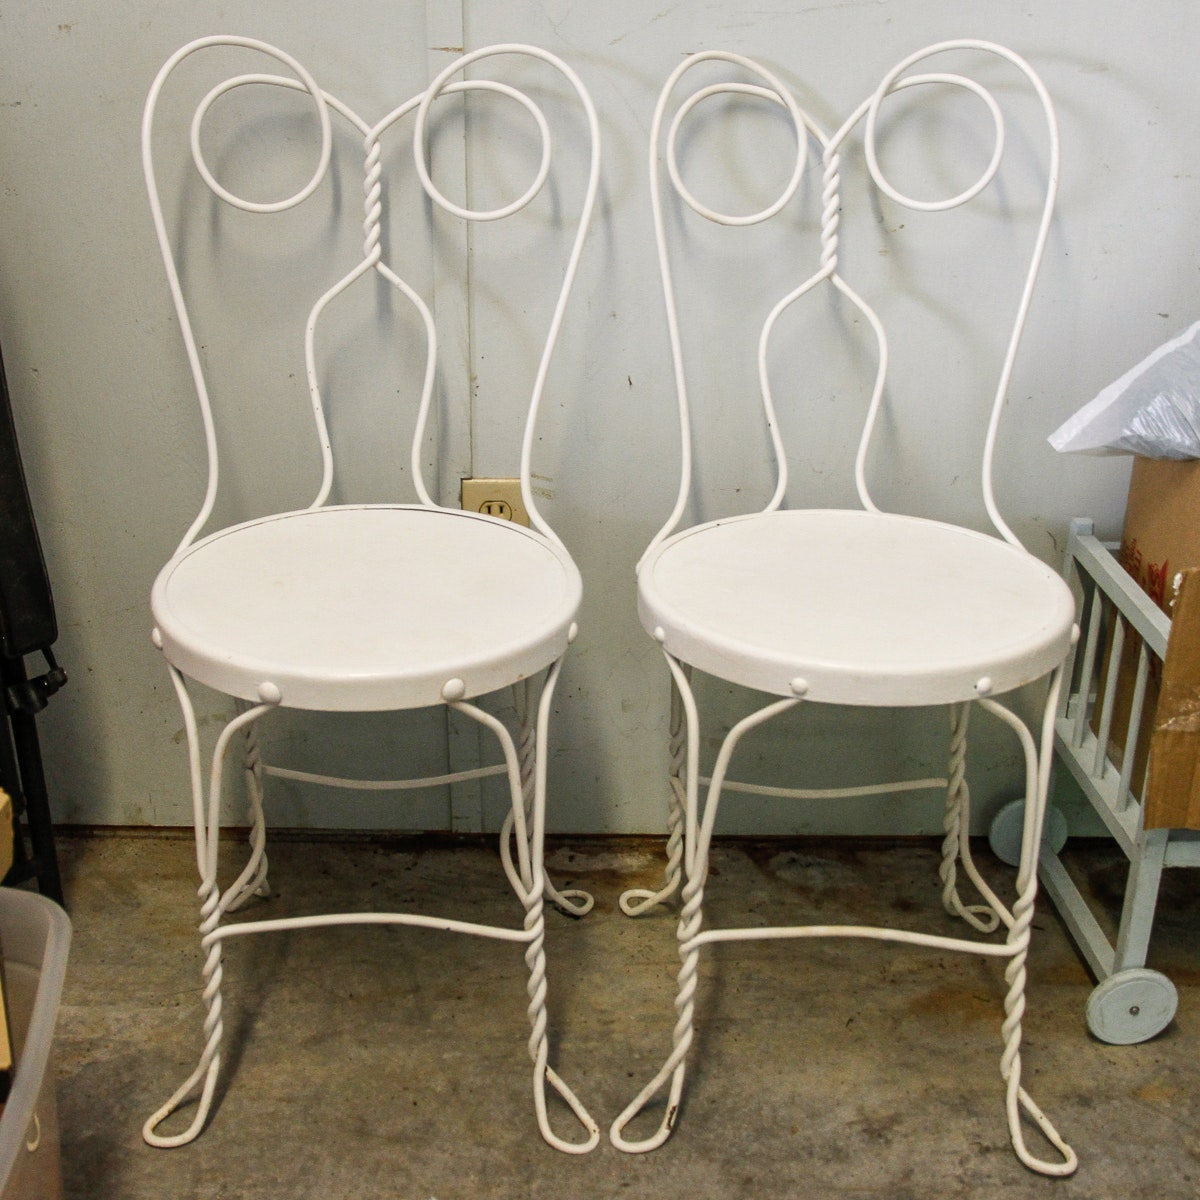 Vintage Ice Cream Parlor Chairs ...